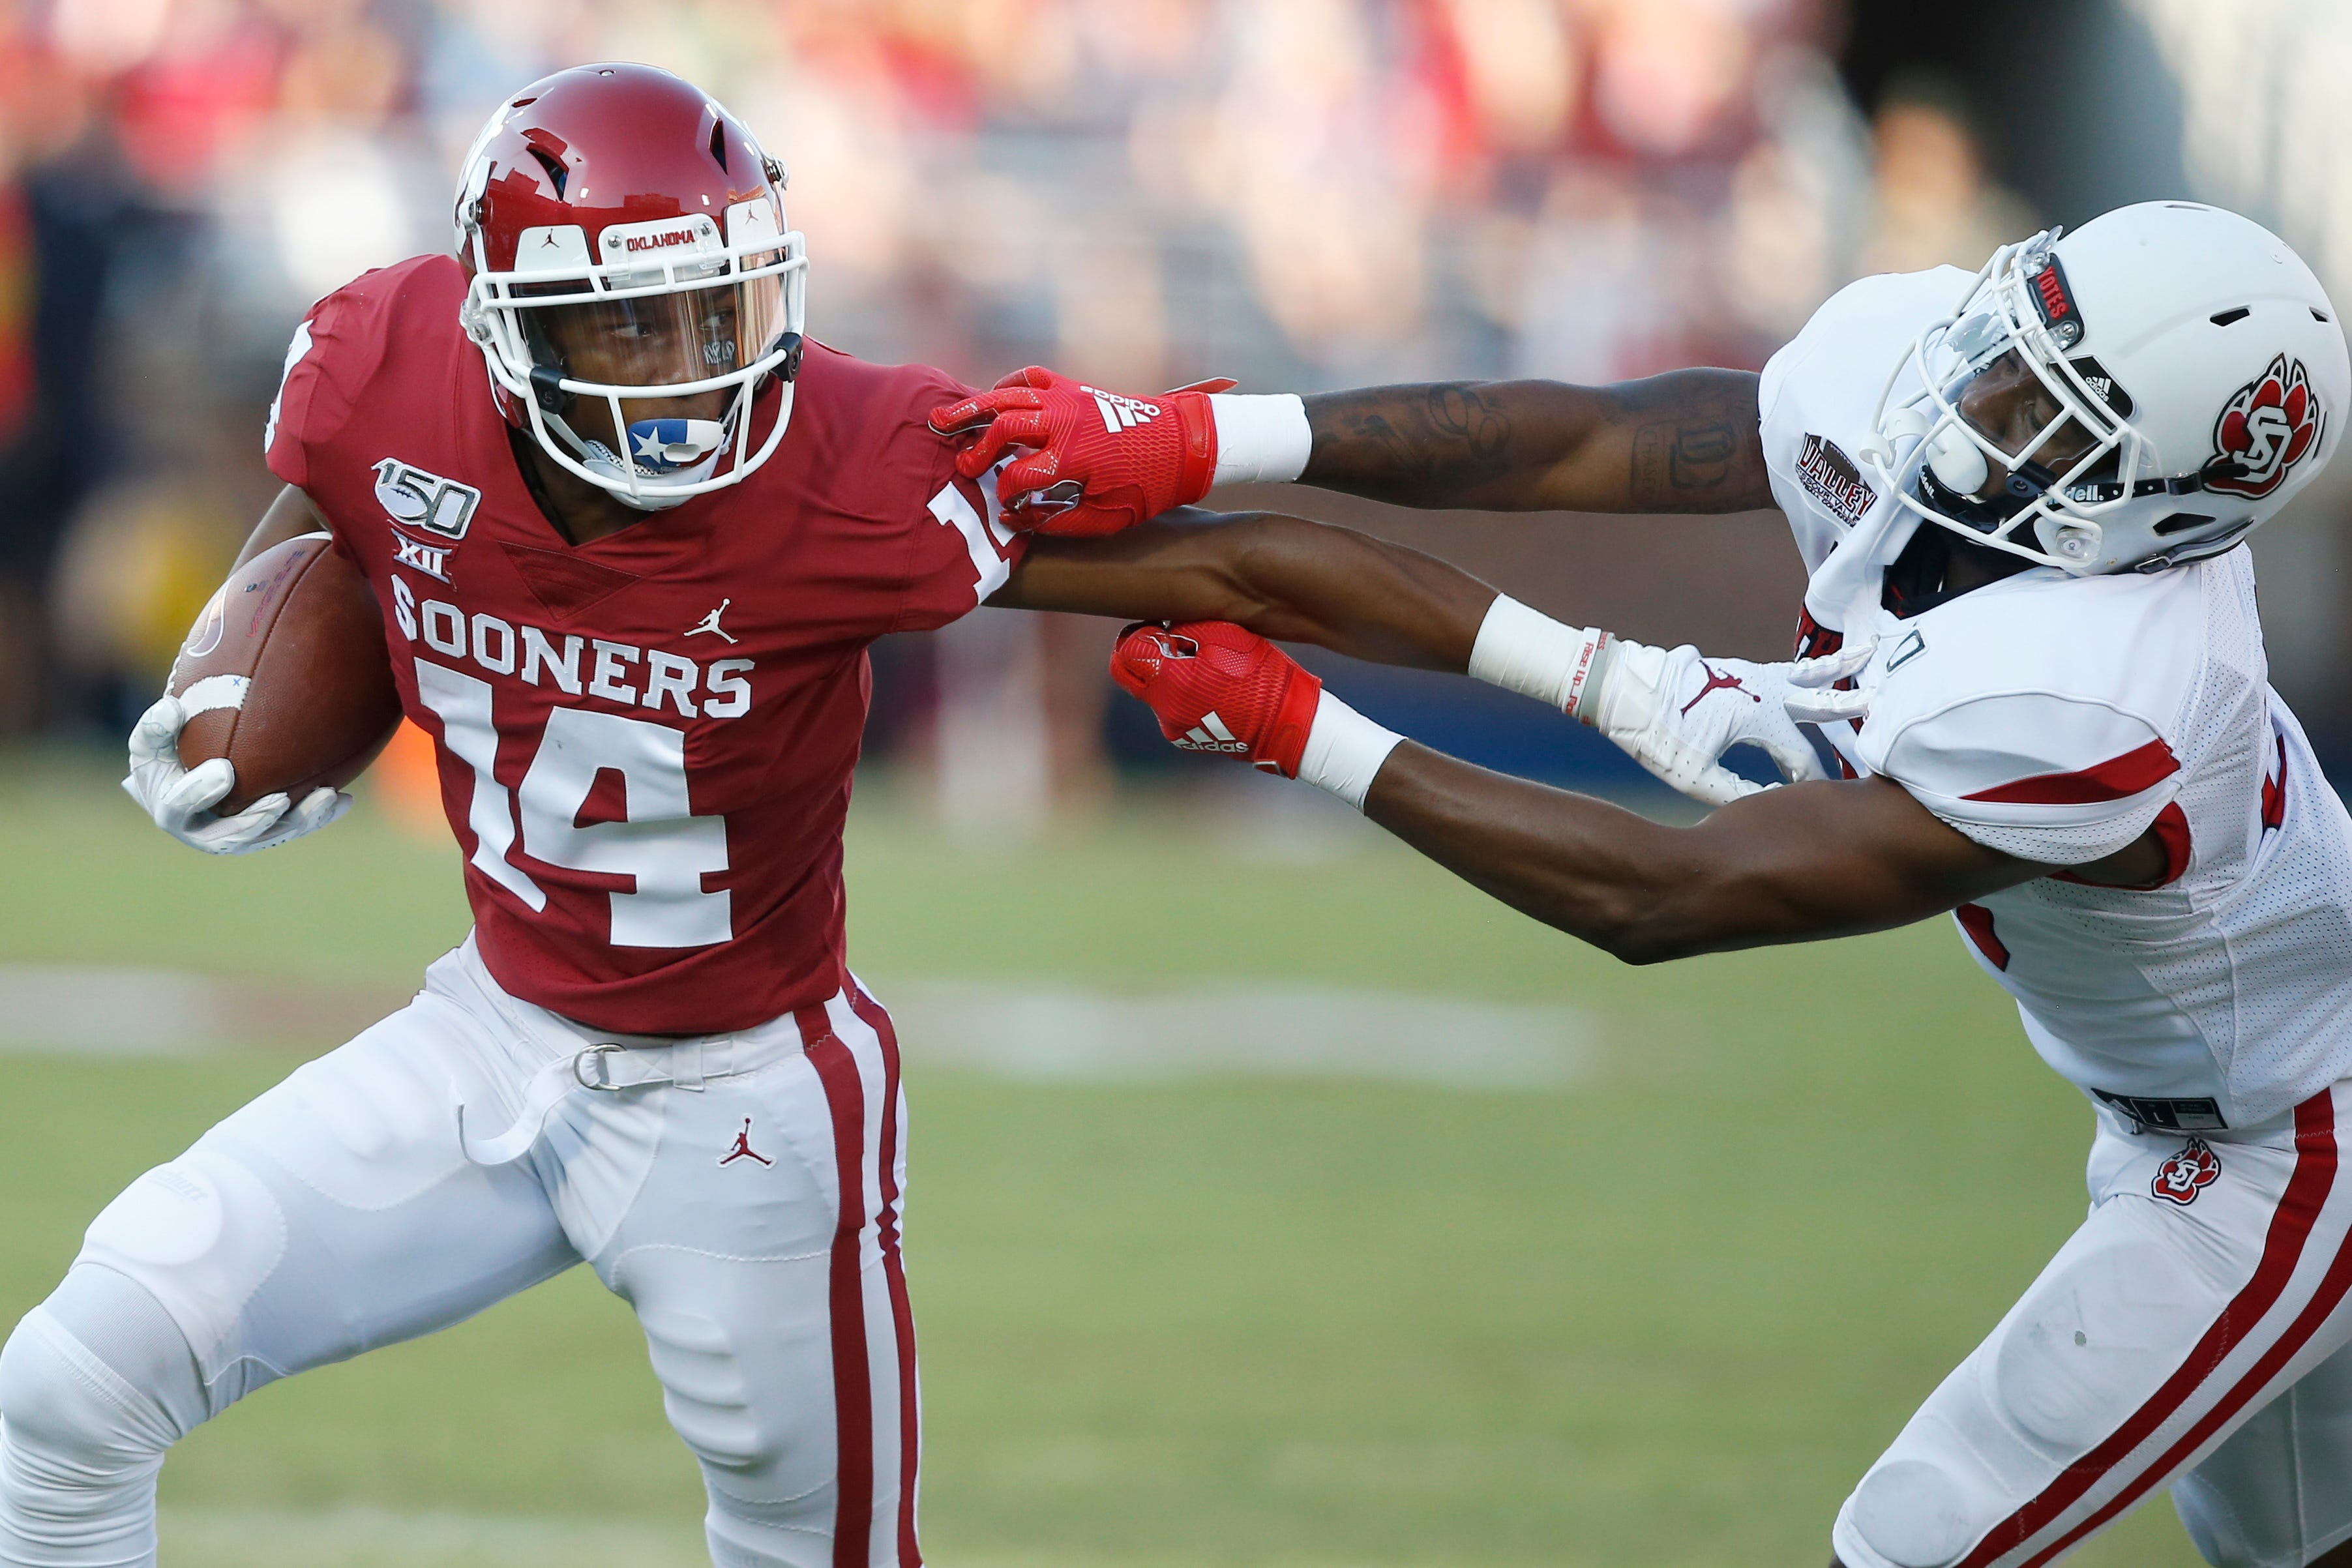 No 4 Oklahoma Sooners Roll Up Over 700 Yards In Rout Of South Dakota